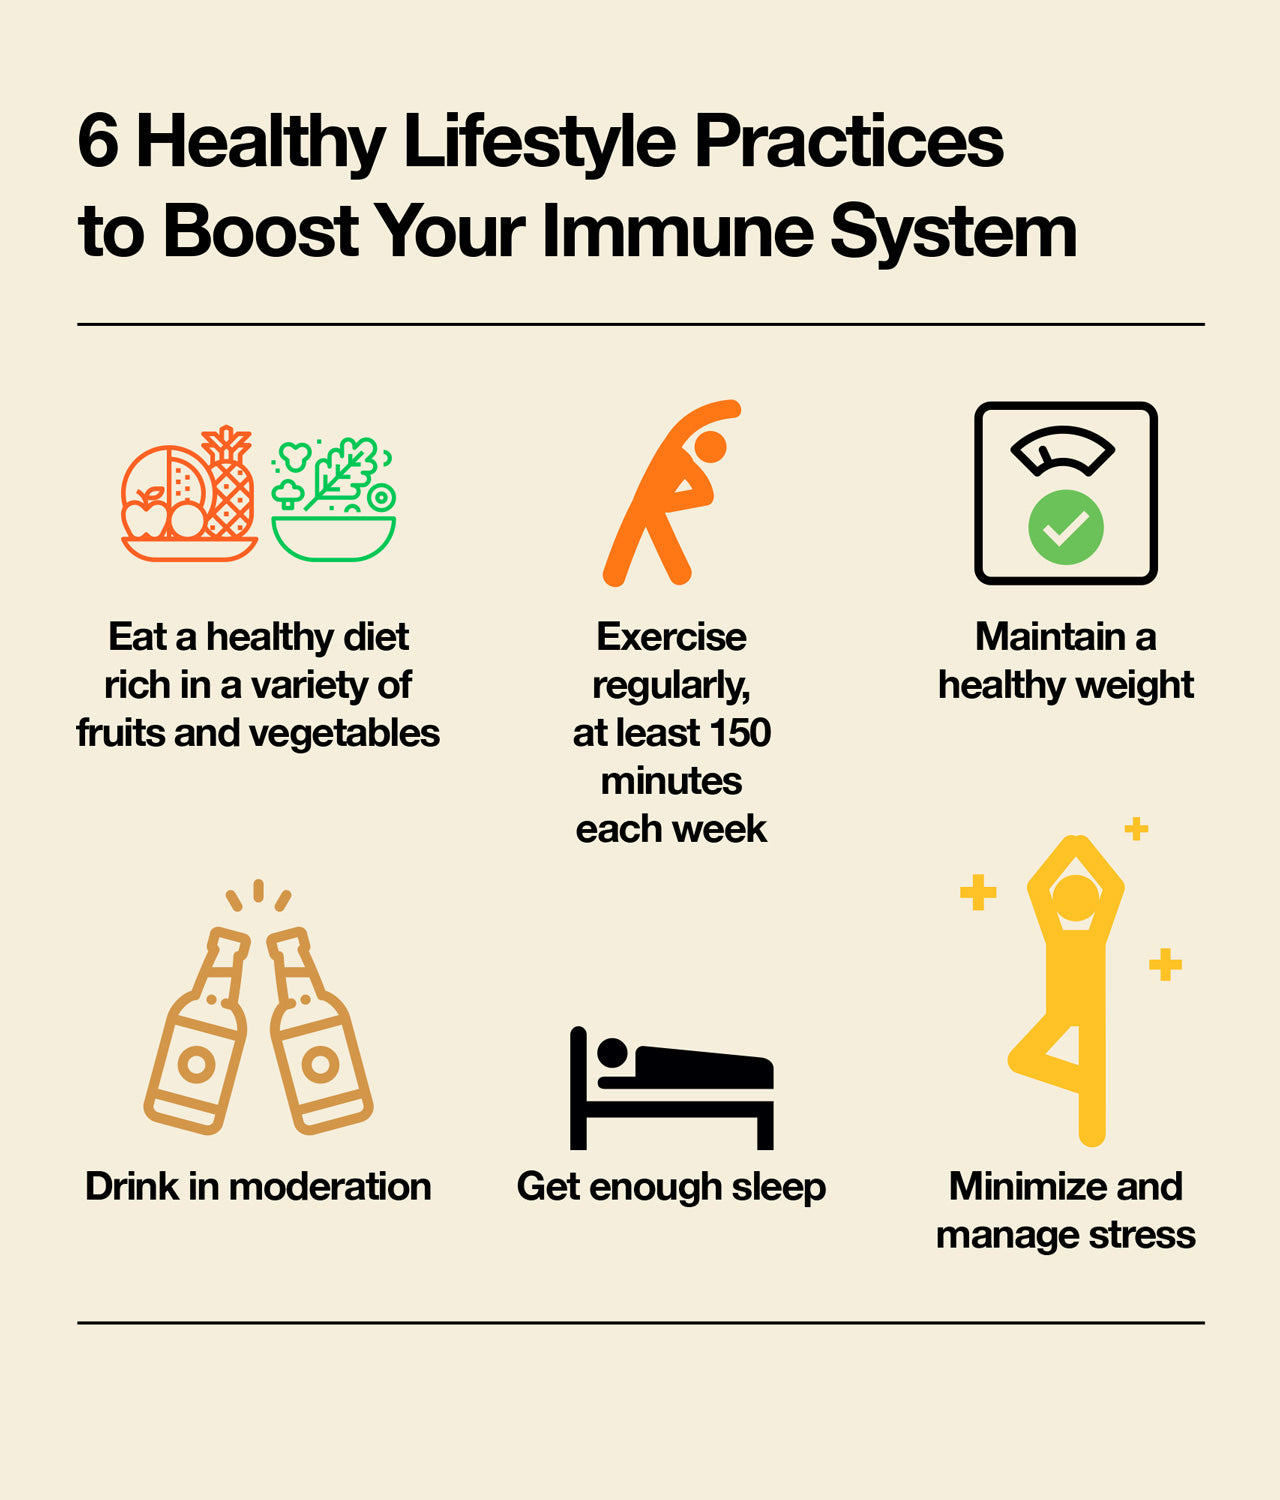 Lifestyle practices to boost immune system